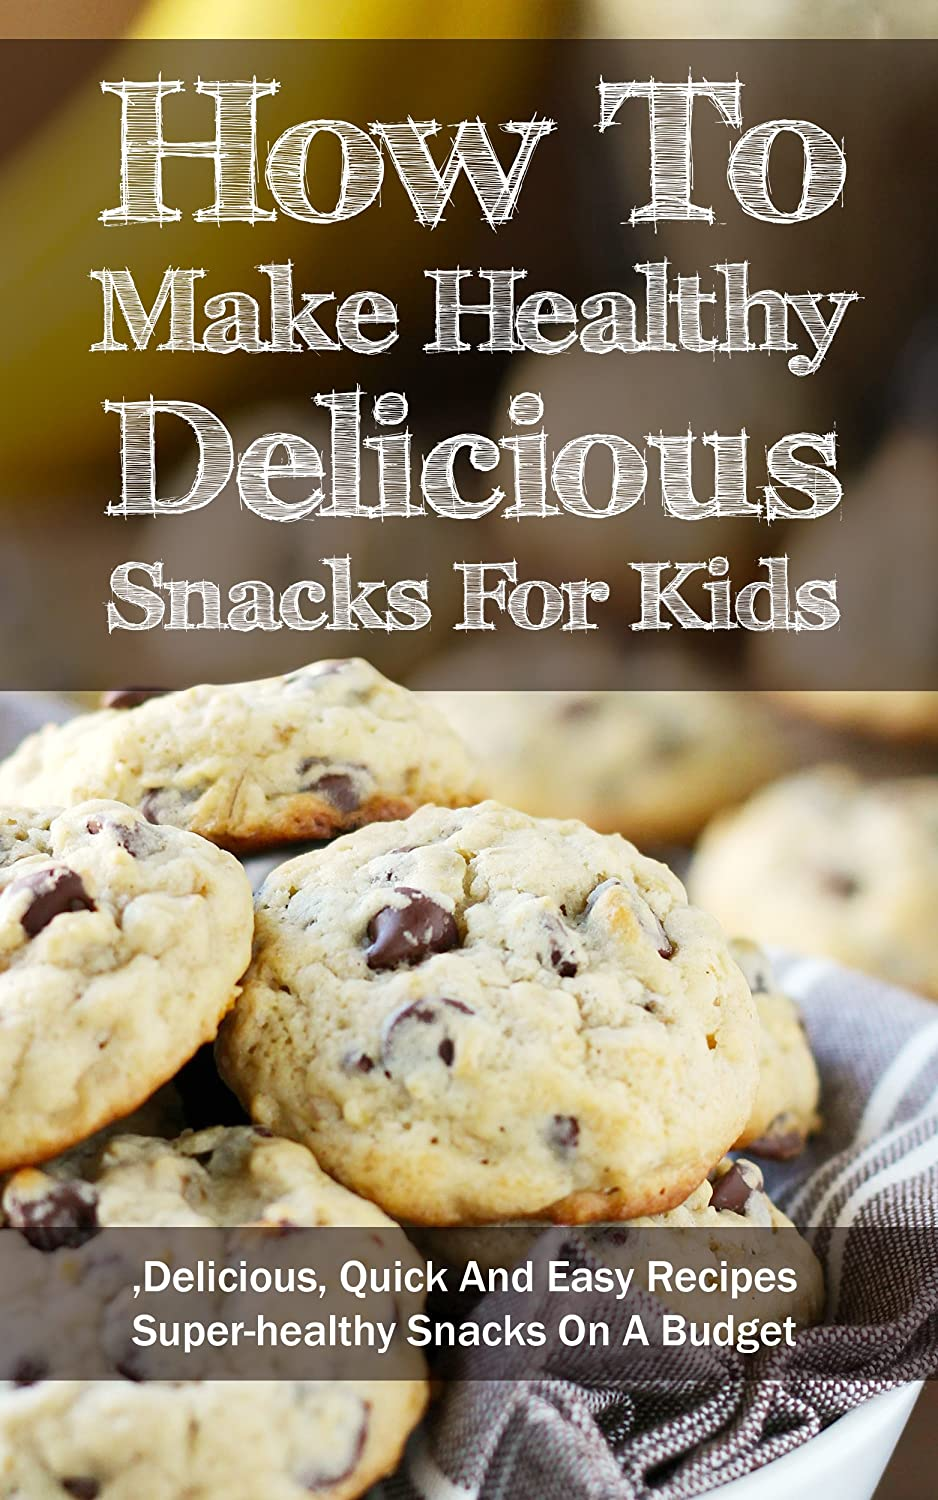 http://www.amazon.com/Make-Healthy-Delicious-Snacks-Kids-ebook/dp/B00OV8F4LM/ref=as_sl_pc_ss_til?tag=lettfromahome-20&linkCode=w01&linkId=SWEQ54XT4YYD3QSC&creativeASIN=B00OV8F4LM